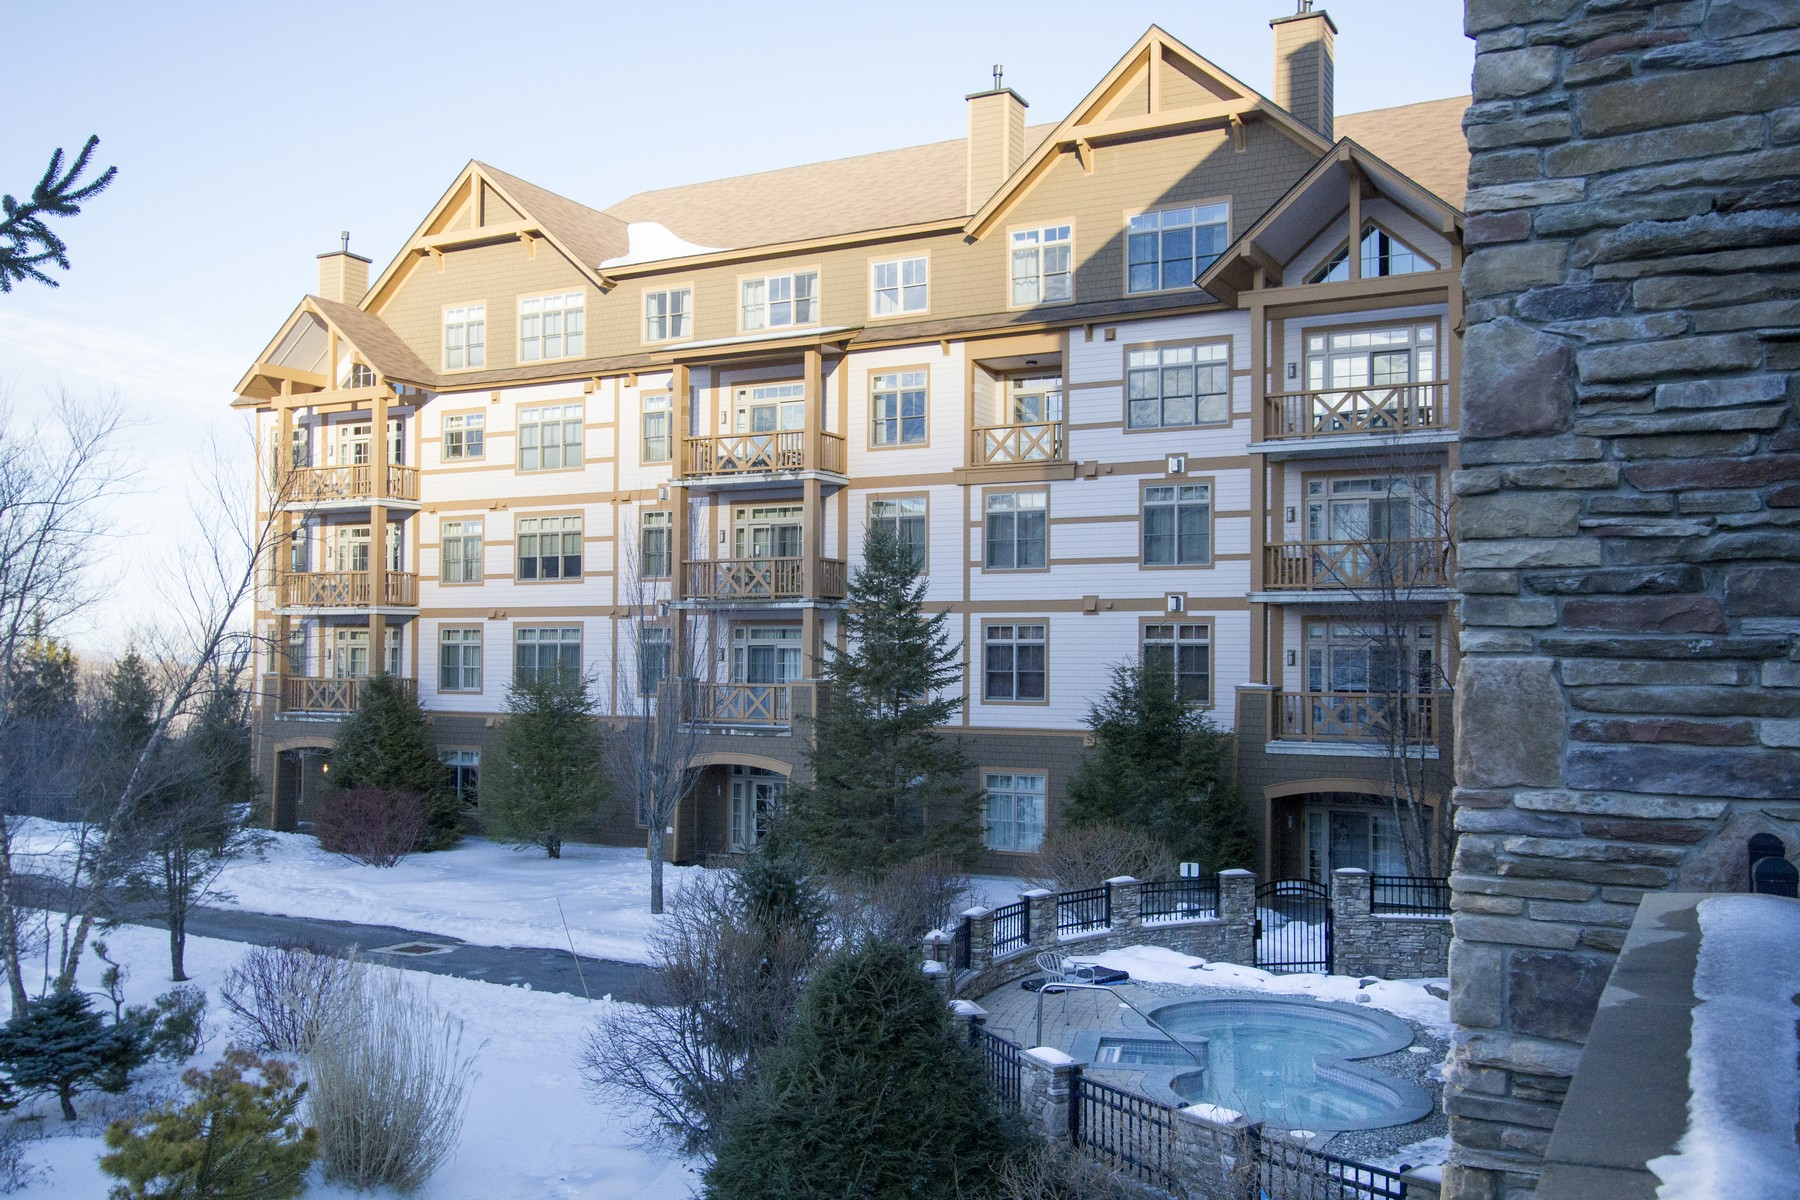 condominiums for Sale at 78 Middle Ridge Road 106, Stratton 78 Middle Ridge Rd 106 Stratton, Vermont 05155 United States